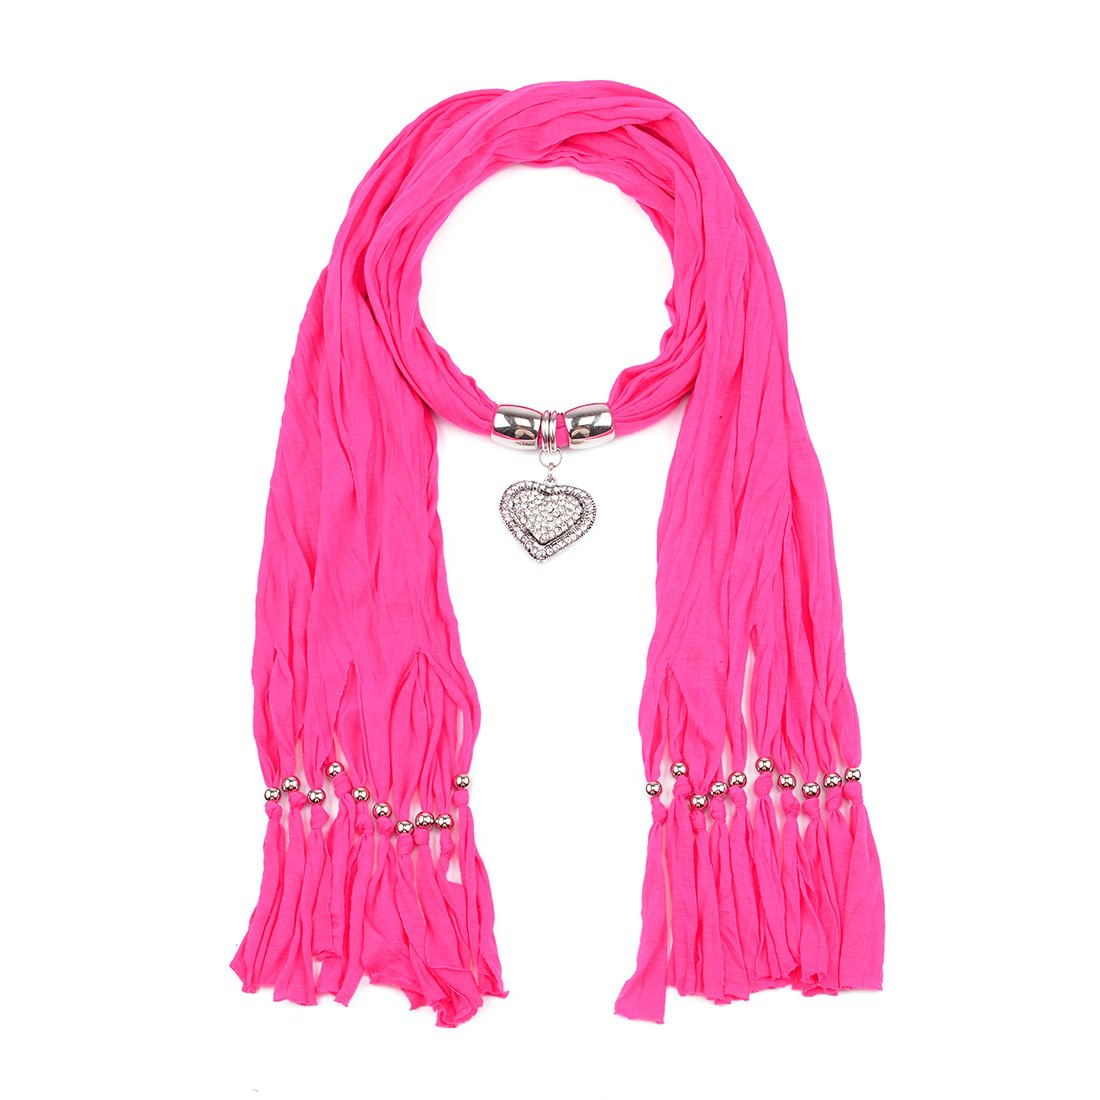 Metal Charm Heart Pendant Jewellery Scarf Necklace-H.Pink